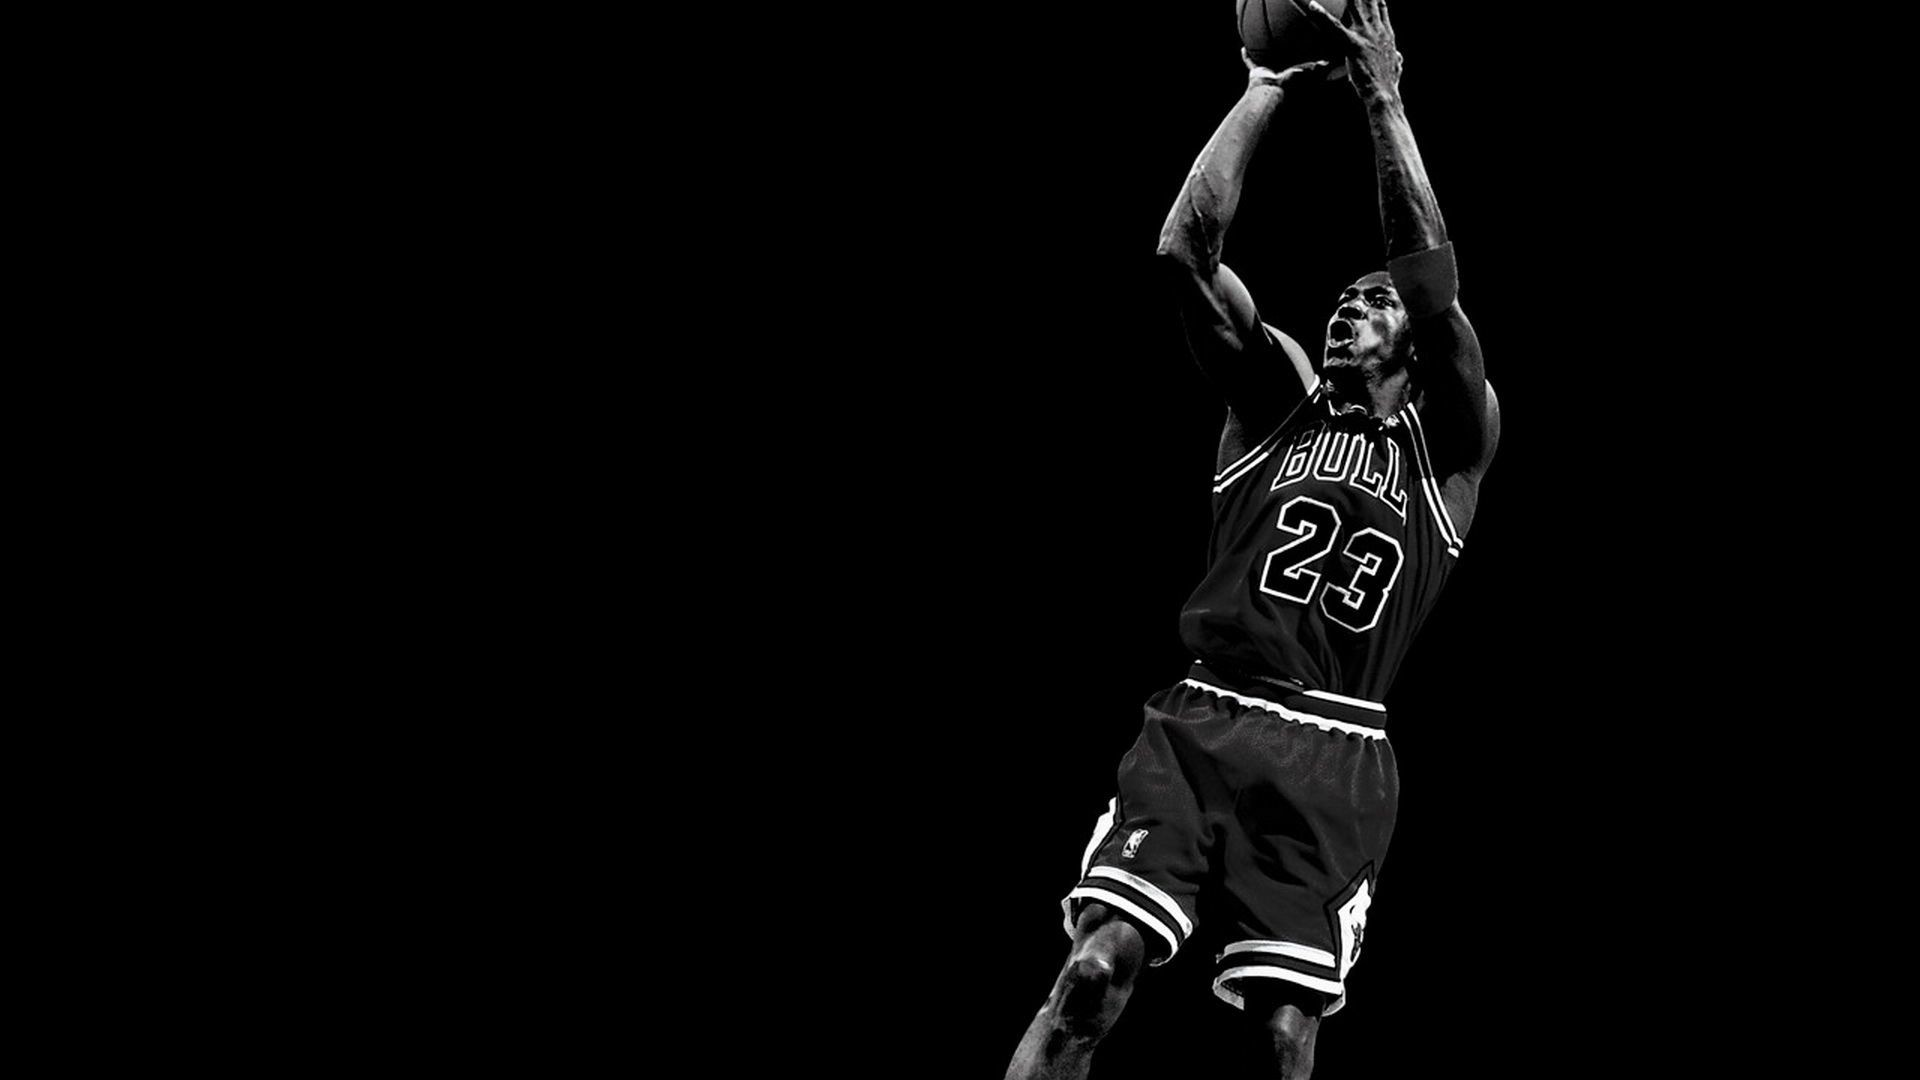 Res: 1920x1080, Air Jordan Wallpapers